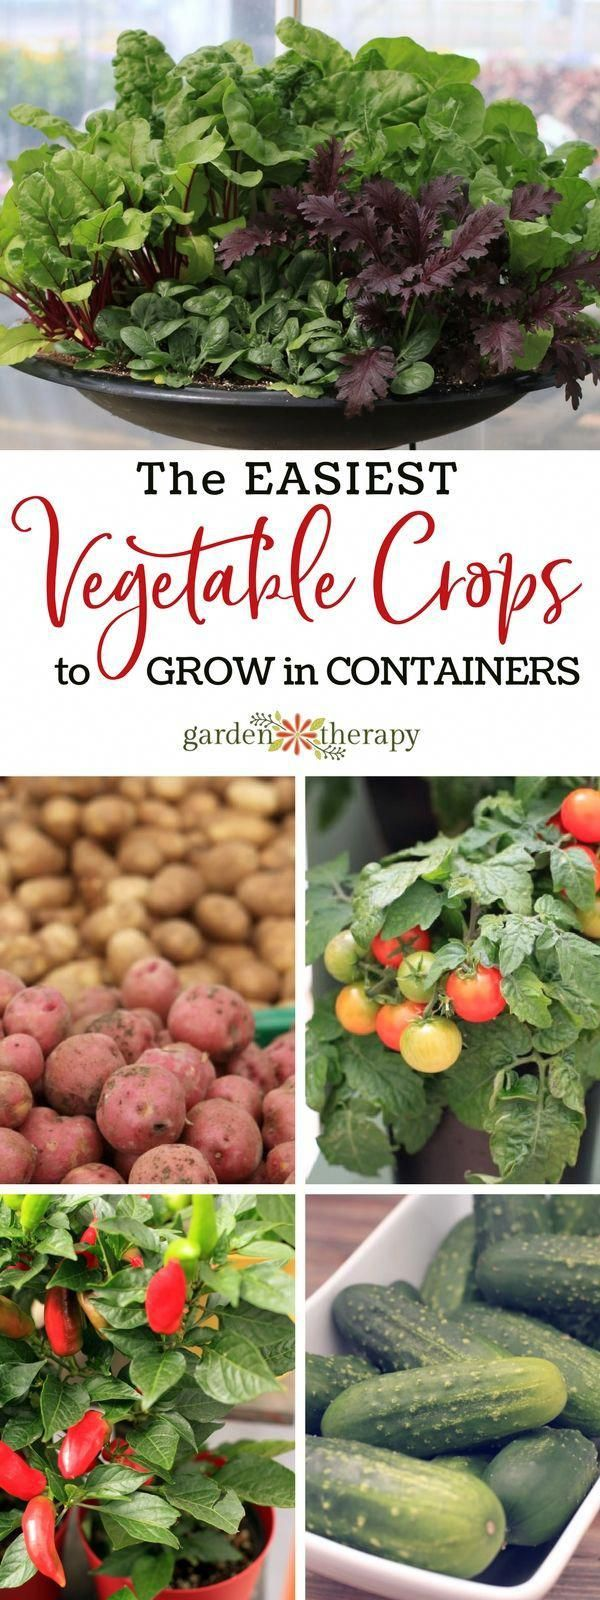 The Easiest Vegetables to Grow in Containers